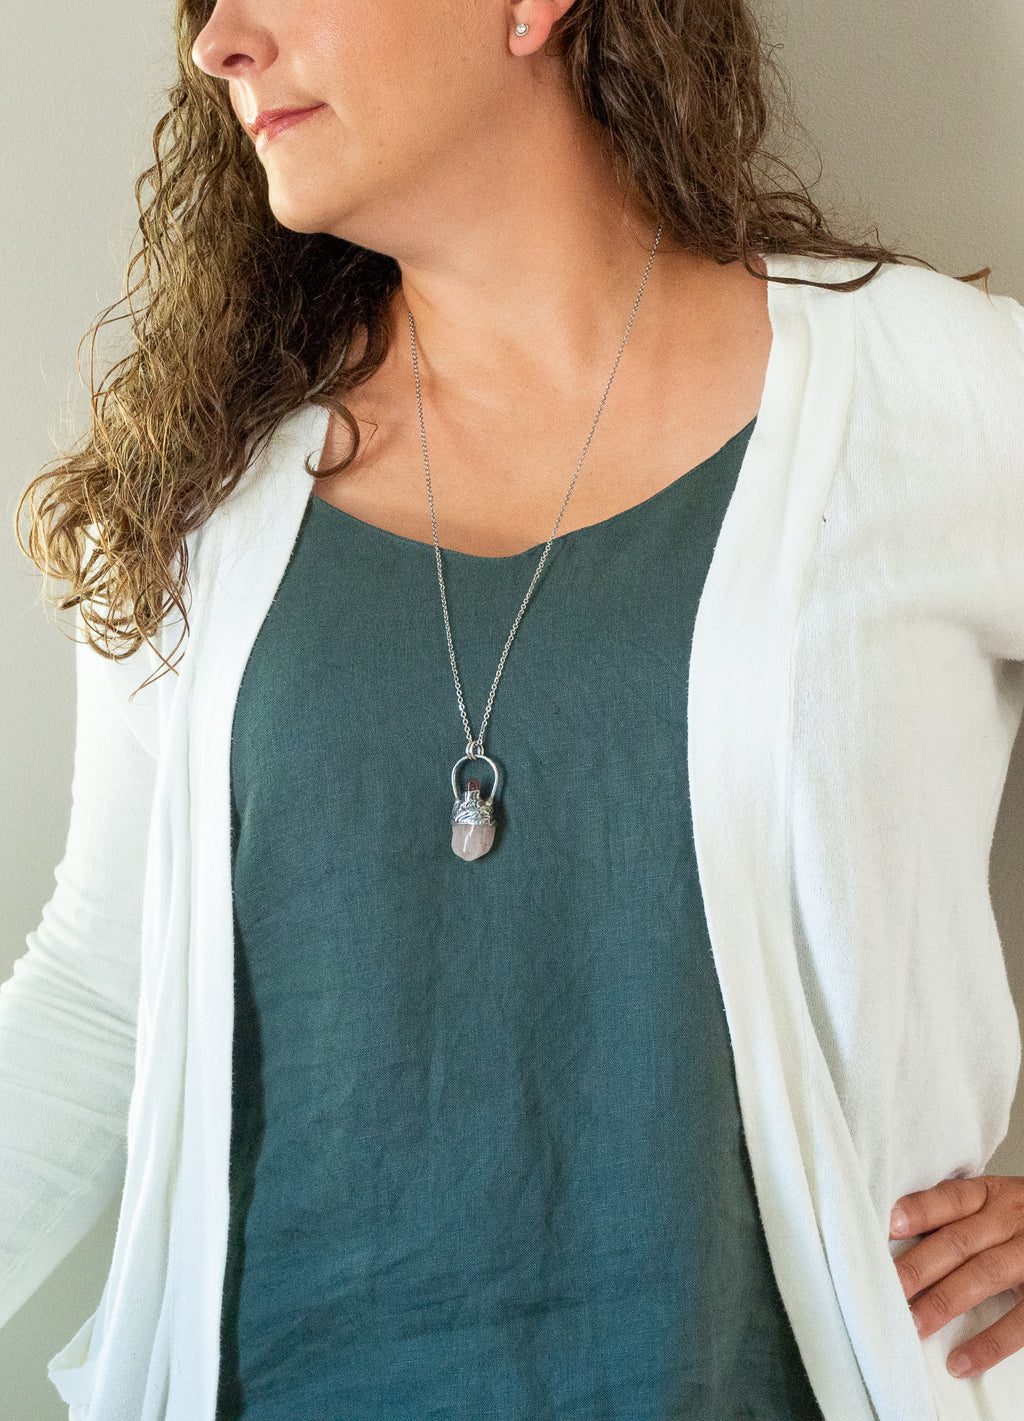 soft pink raw gemstone crystal talisman necklace on woman in blue and white top